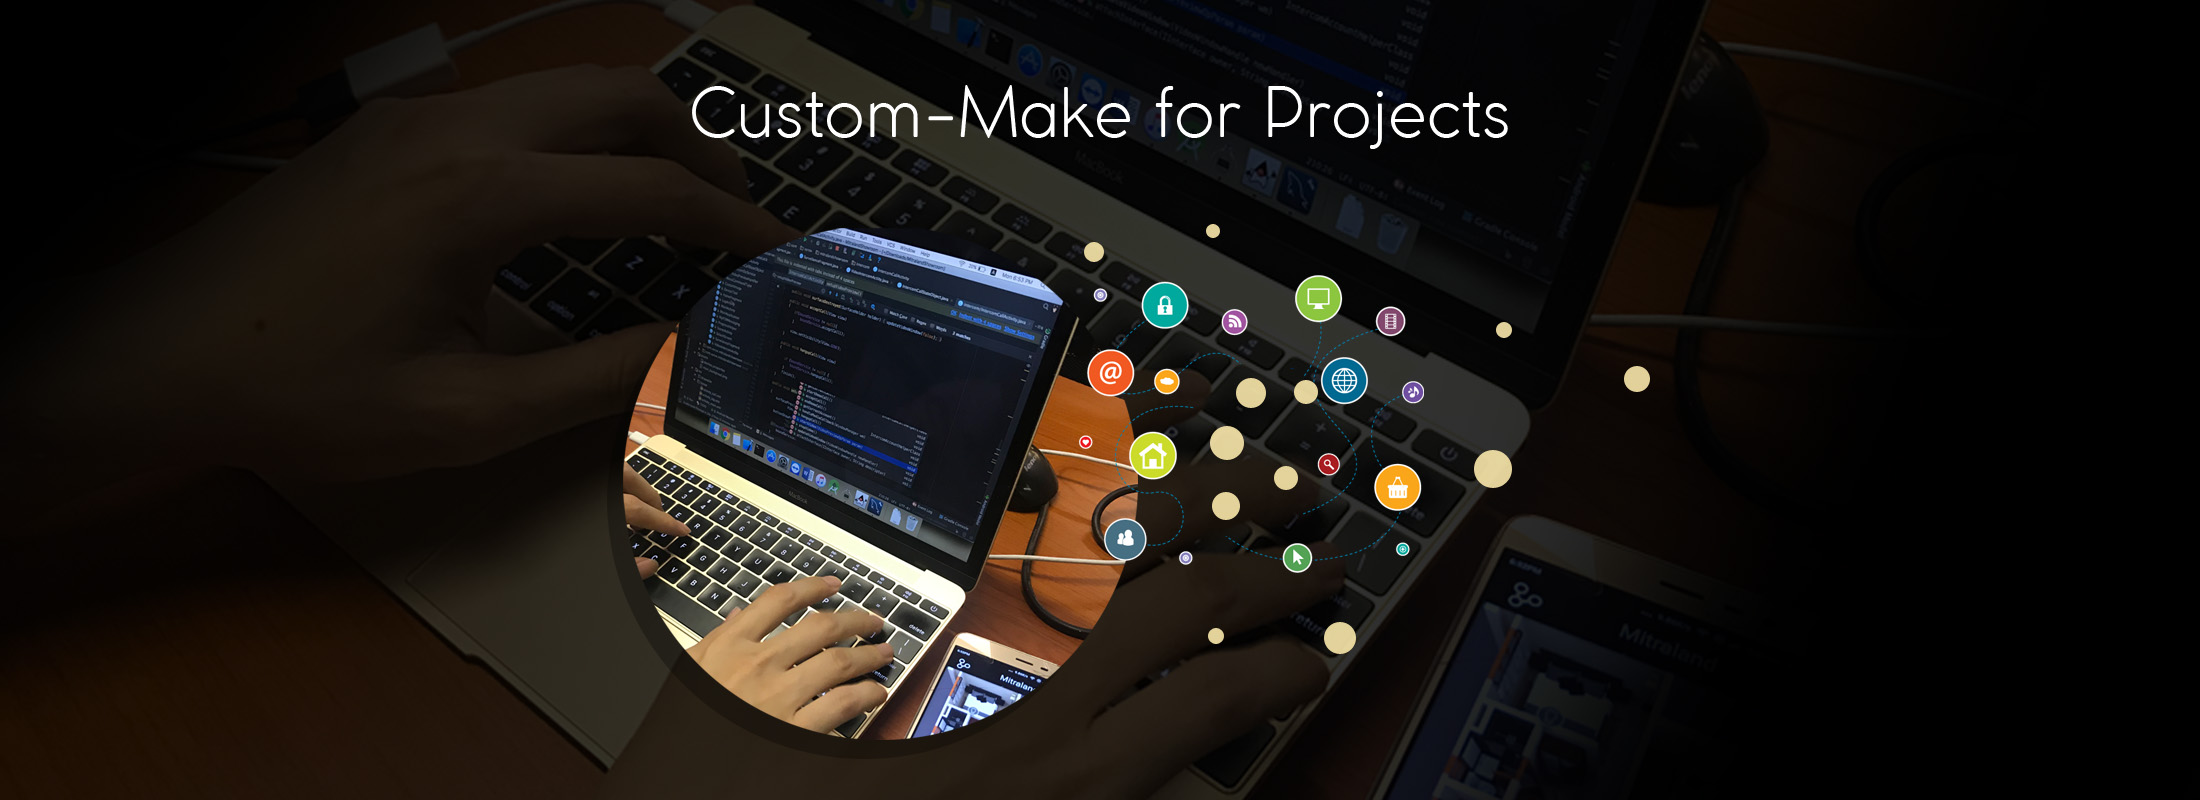 Custom-make for projects